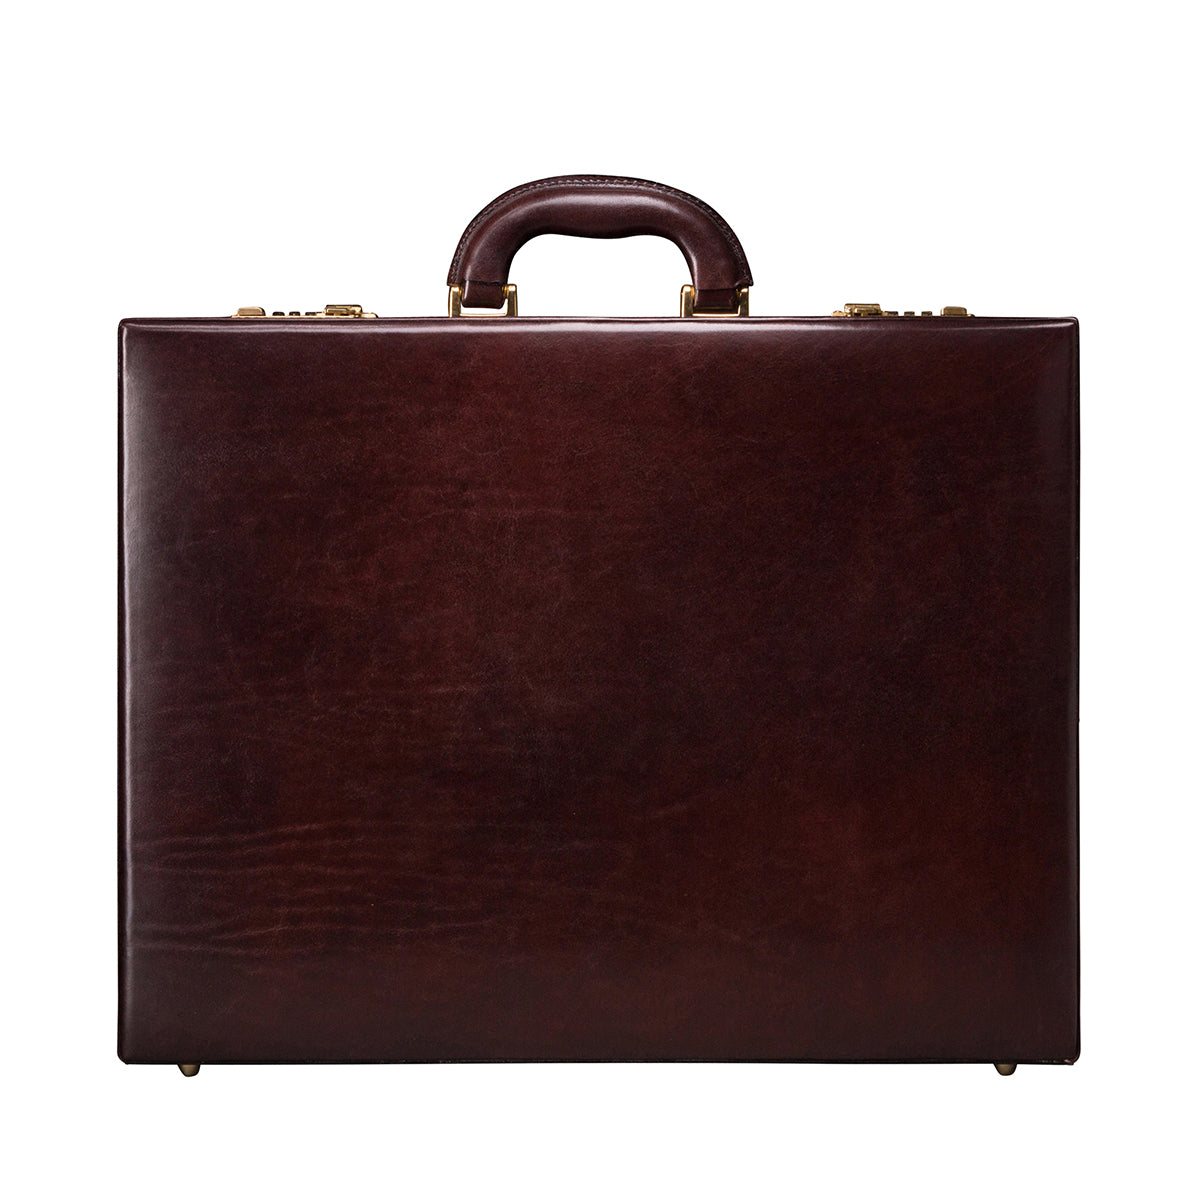 Image 1 of the 'Strada' Dark Chocolate Veg-Tanned Leather Business Attaché  Case